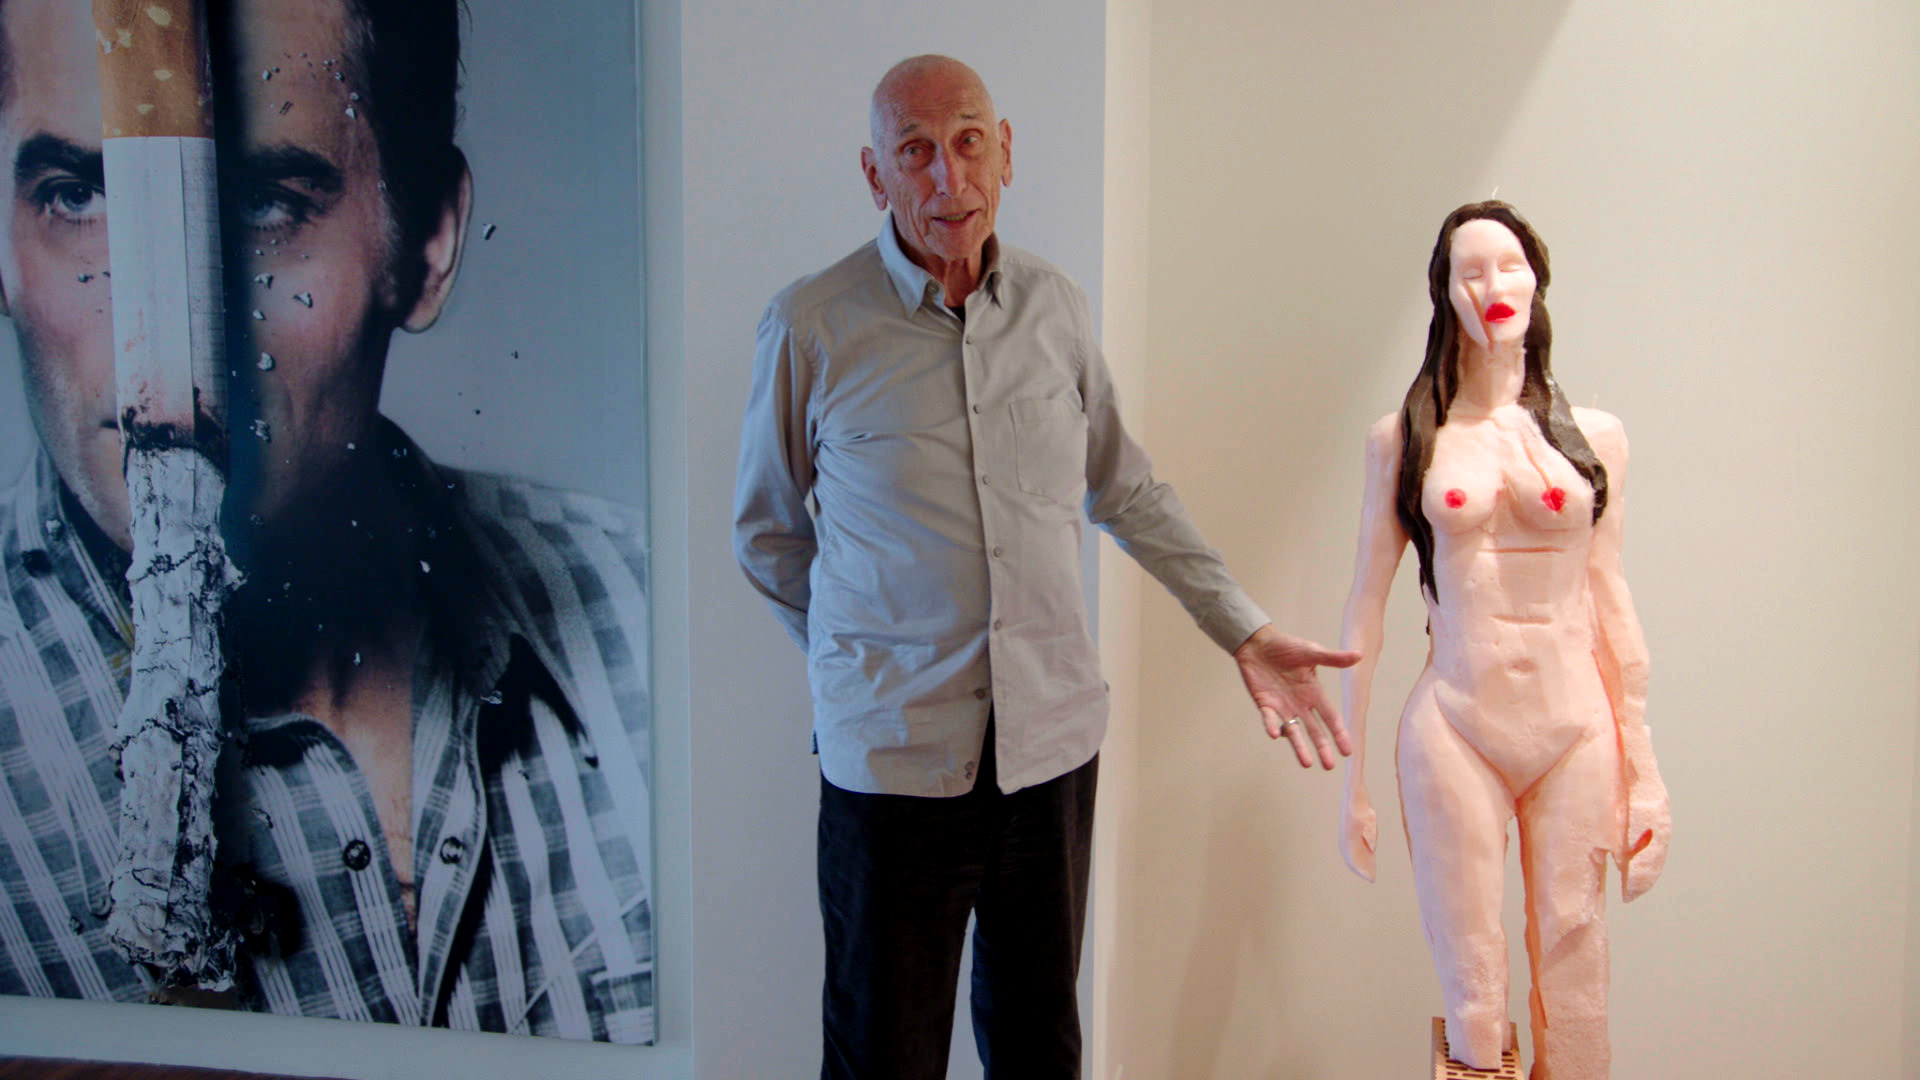 """Art collector Stefan Edlis in front of (l. to r.) artist Urs Fischer's """"Dried"""" collage and """"Untitled (Candle)"""" sculpture as part of Edlis' collection in  The Price of Everything , directed by Nathaniel Kahn. Courtesy of HBO Documentary Films."""